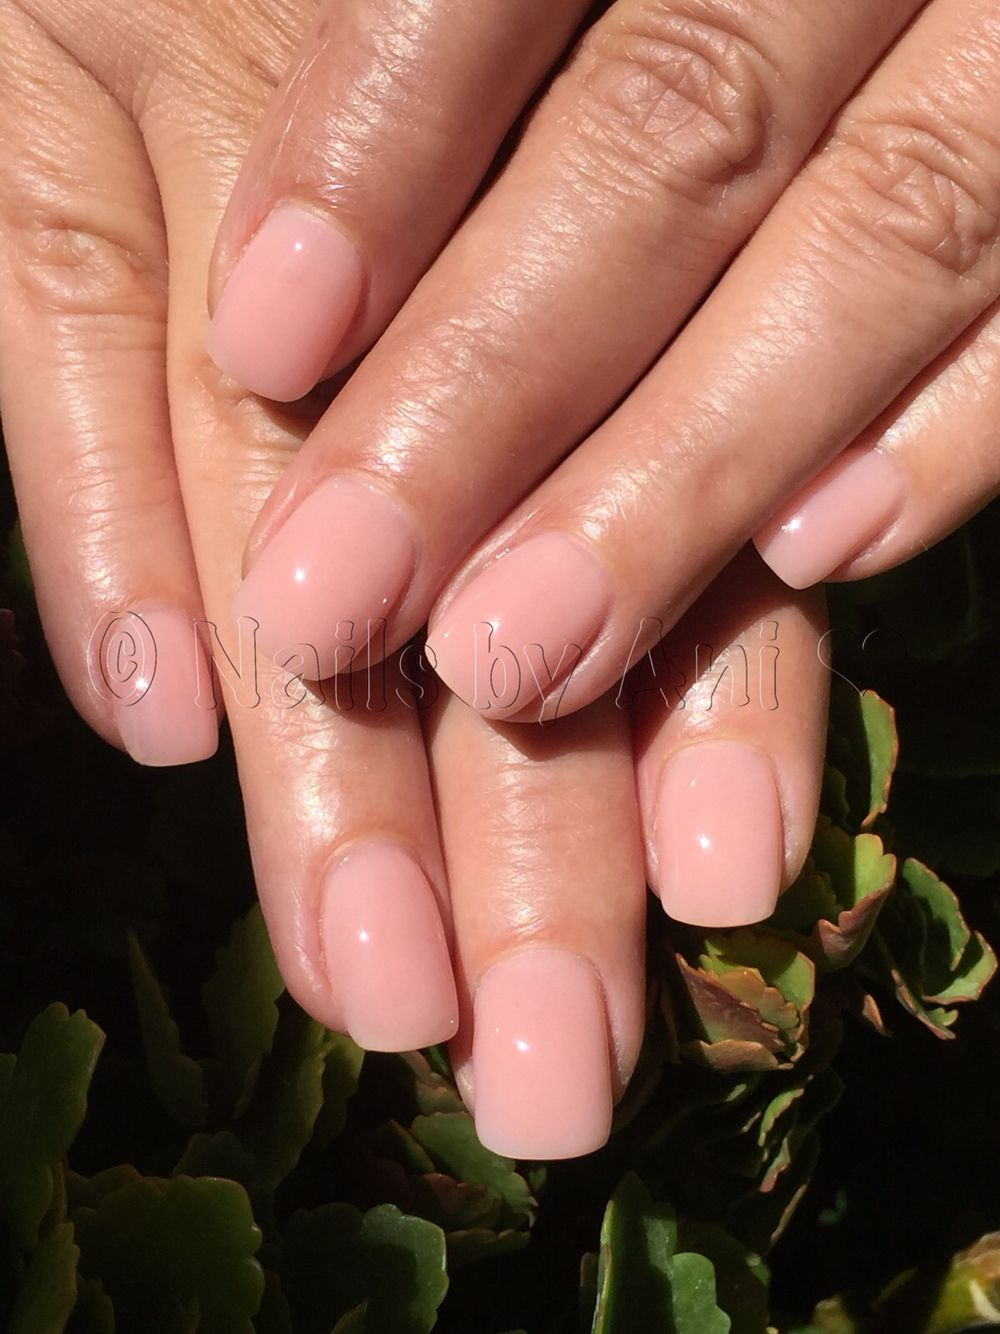 All Acrylic Pink Overlay Over Natural Nails Natural Nails Nails Acrylic Short Overlay Nails